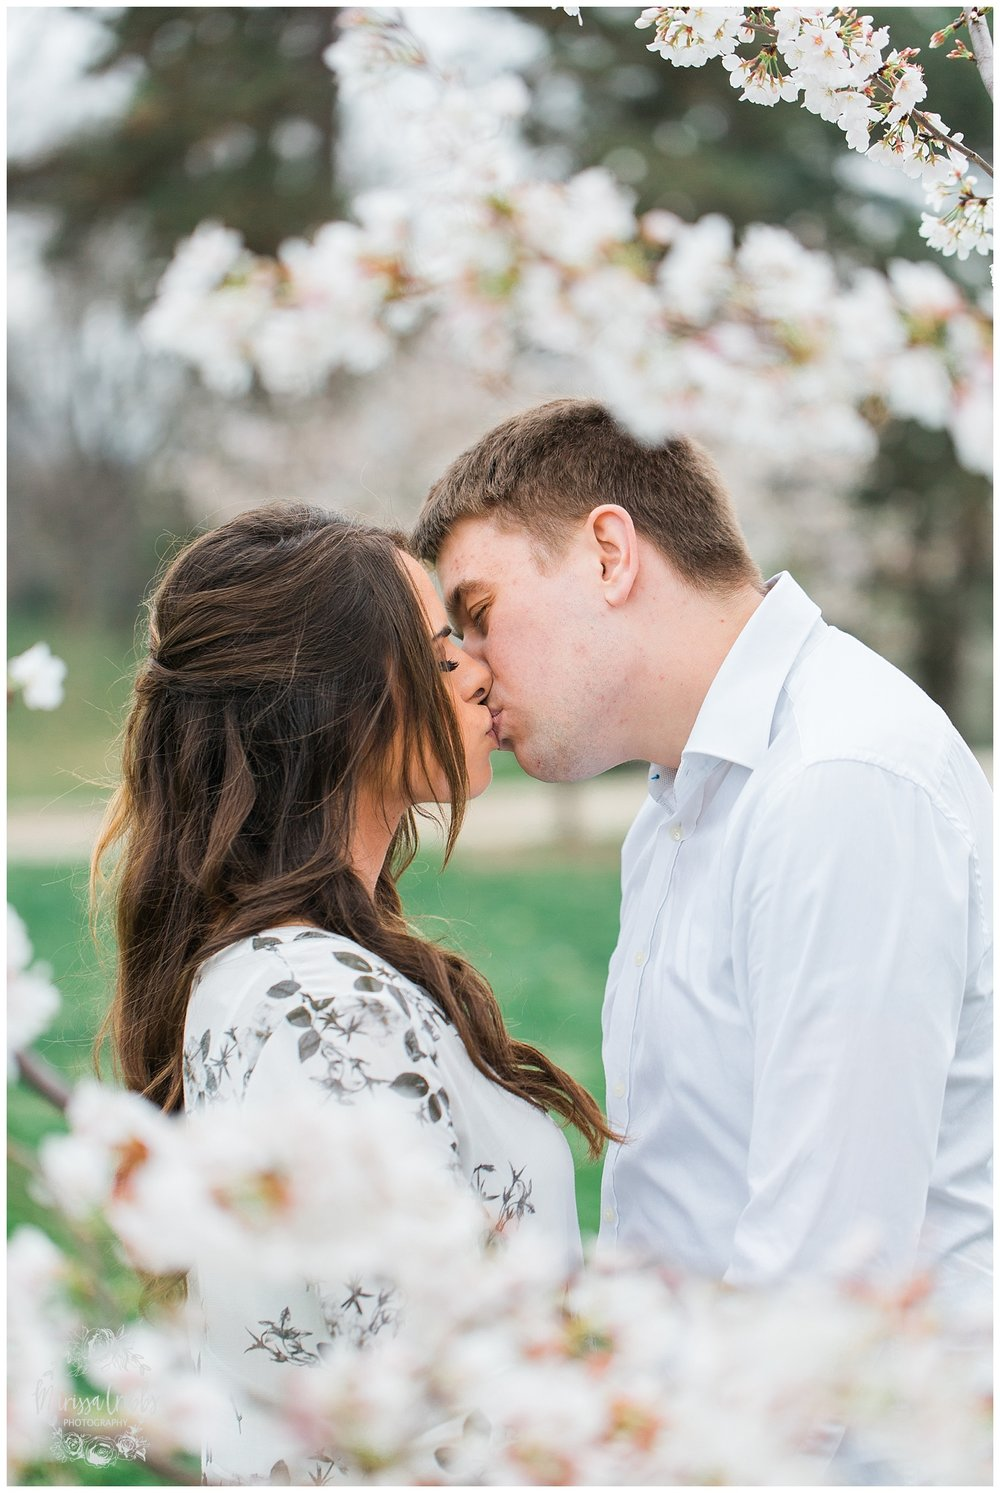 Loose Park Photography | KC Photographers | Marissa Cribbs Photography | KC Wedding Photographers_0640.jpg